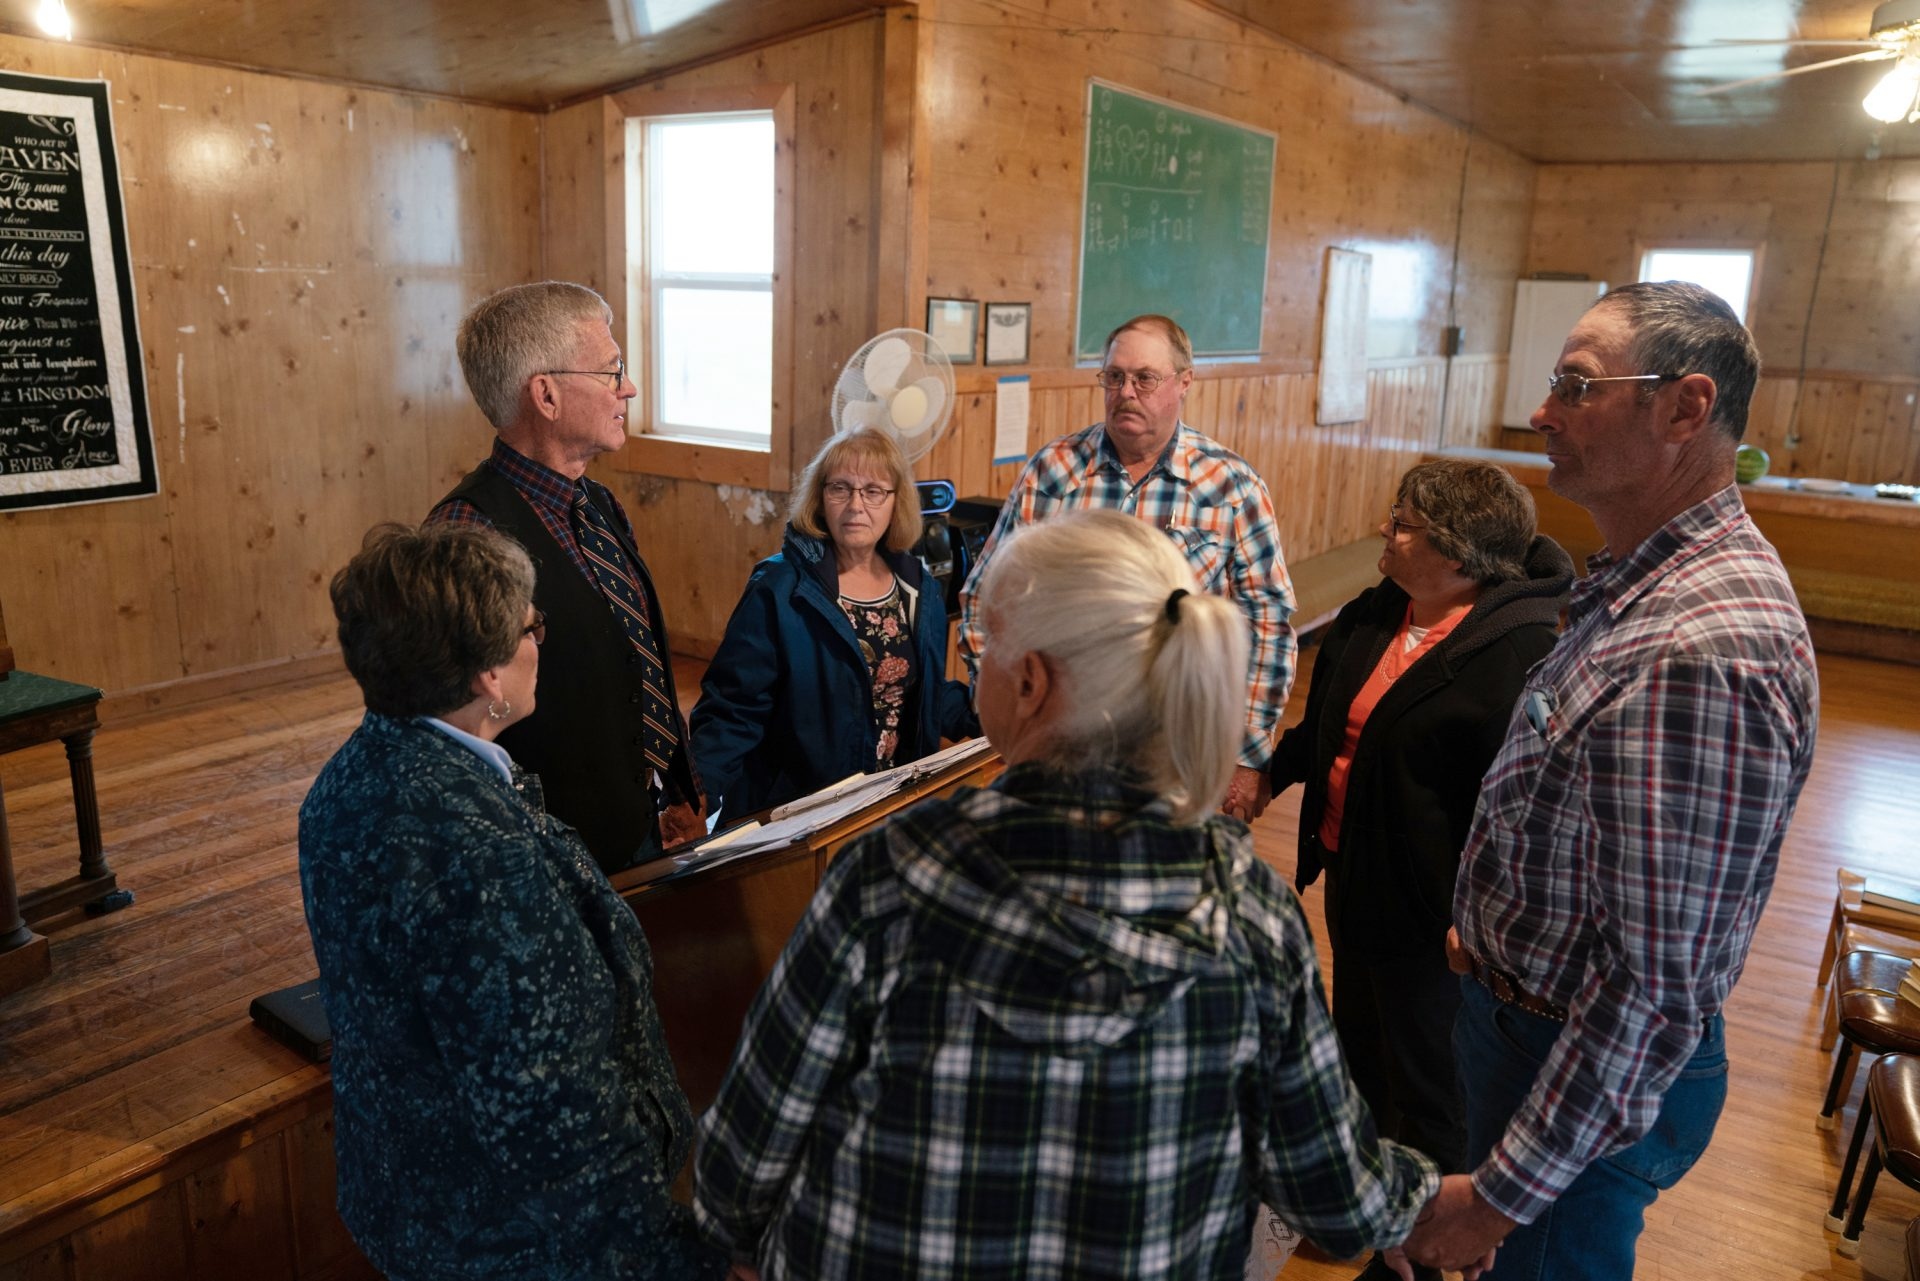 Ranchers gather with traveling pastor Hal DeBoer for a religious service at First Creek Community Hall.